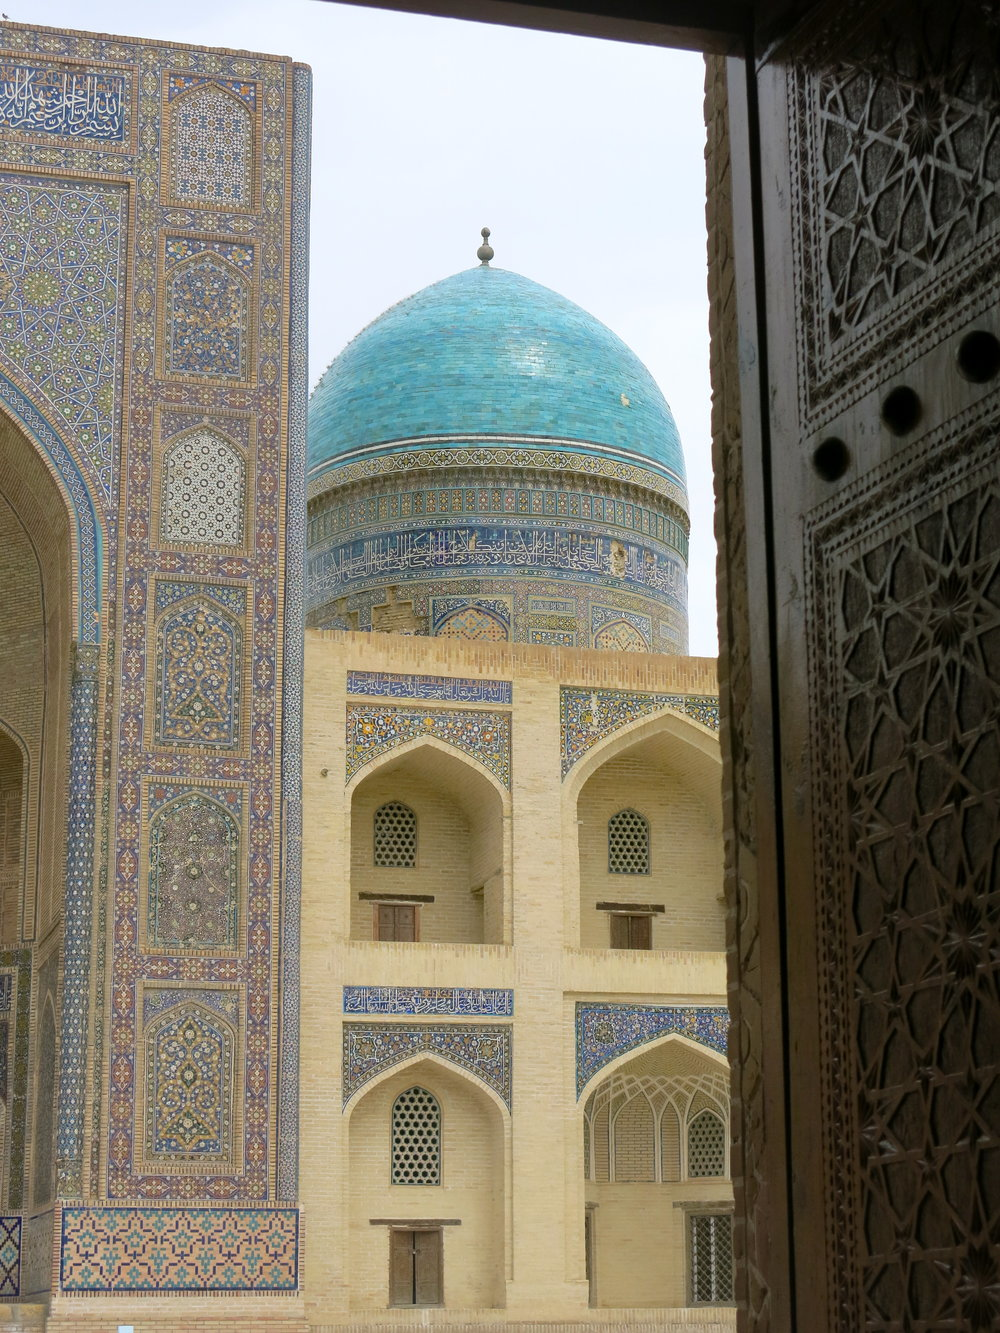 View on the madrasa from behind the doors of the mosque